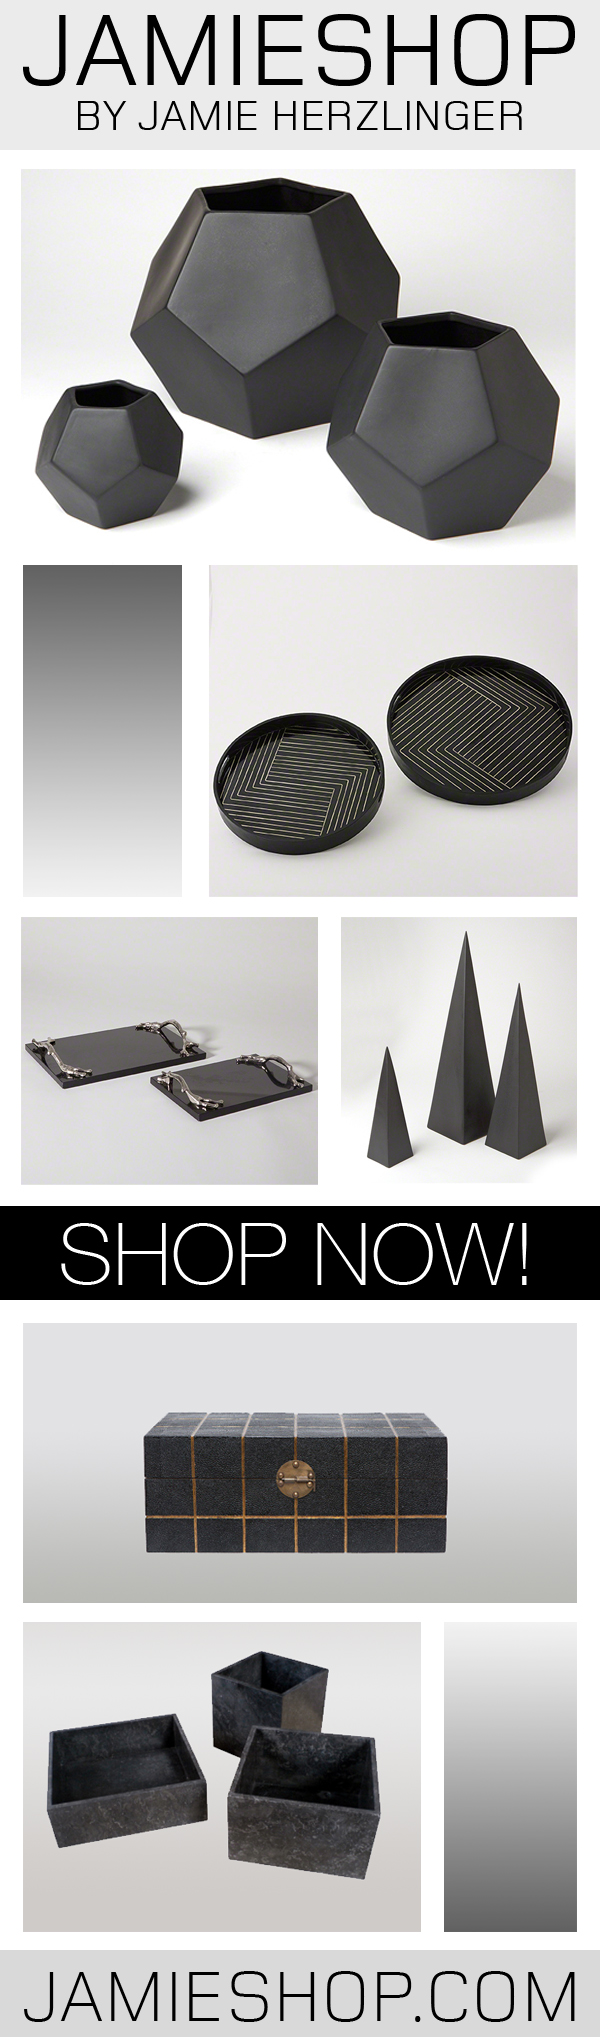 These black accessories would work with any black interior! Visit JAMIESHOP for the latest in accessories, furnishings and home decor! SHOP NOW! #accessories #furnishings #decor #design